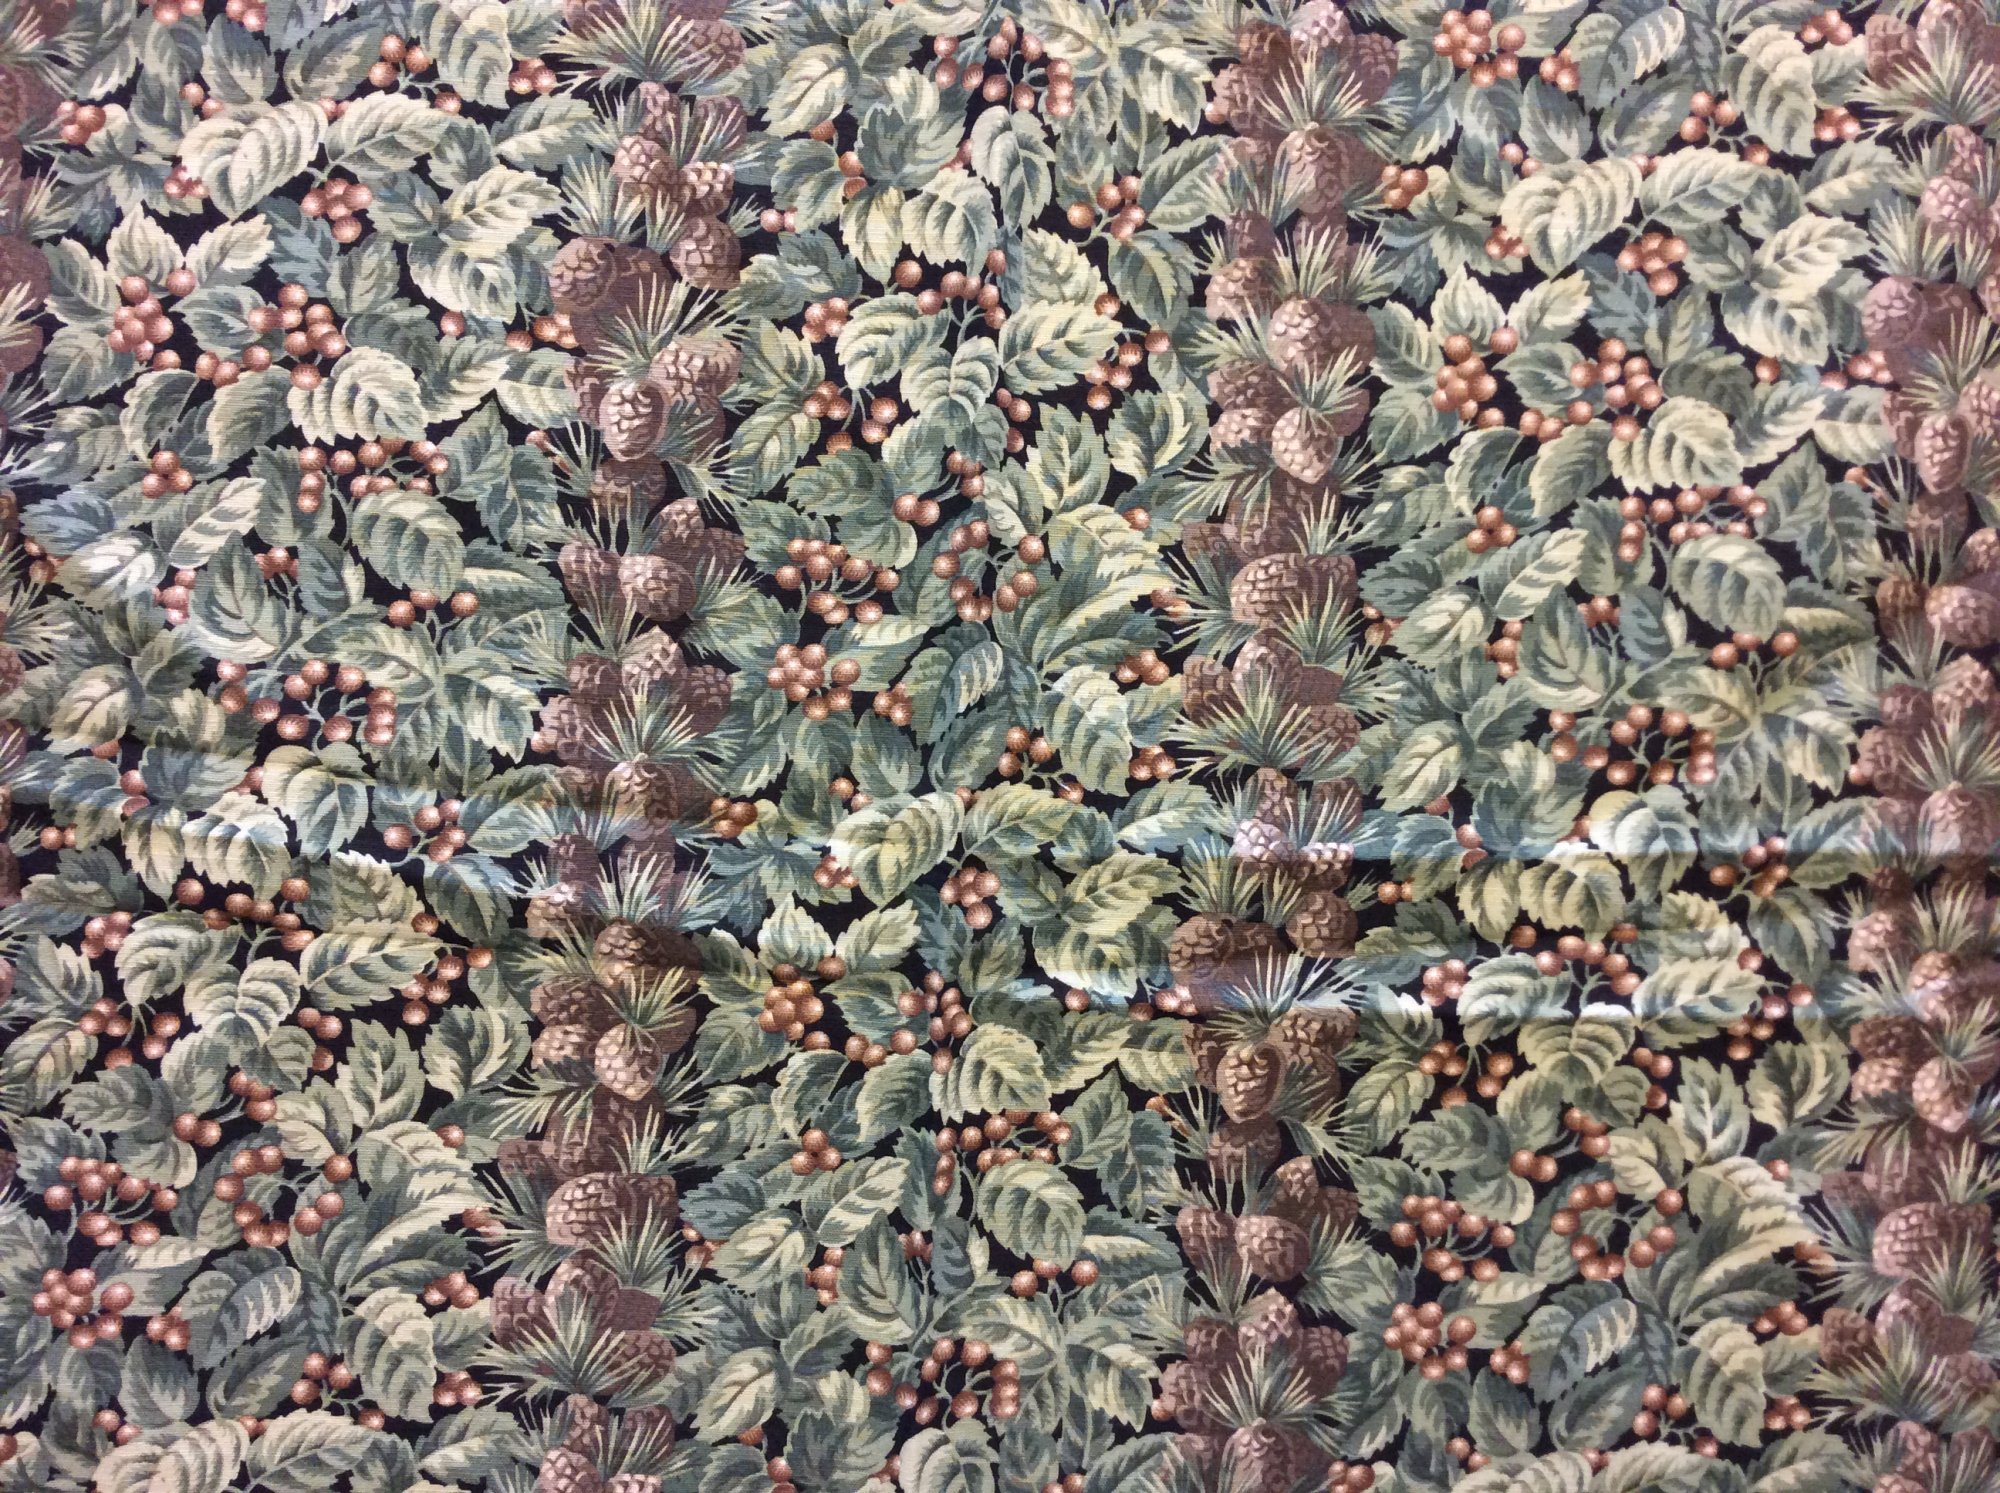 Vintage Clarence House Made in France Pinecone Forest Lodge Striped Fabric 'Le Rivet' Linen Blend Home Decor Fabric REM036